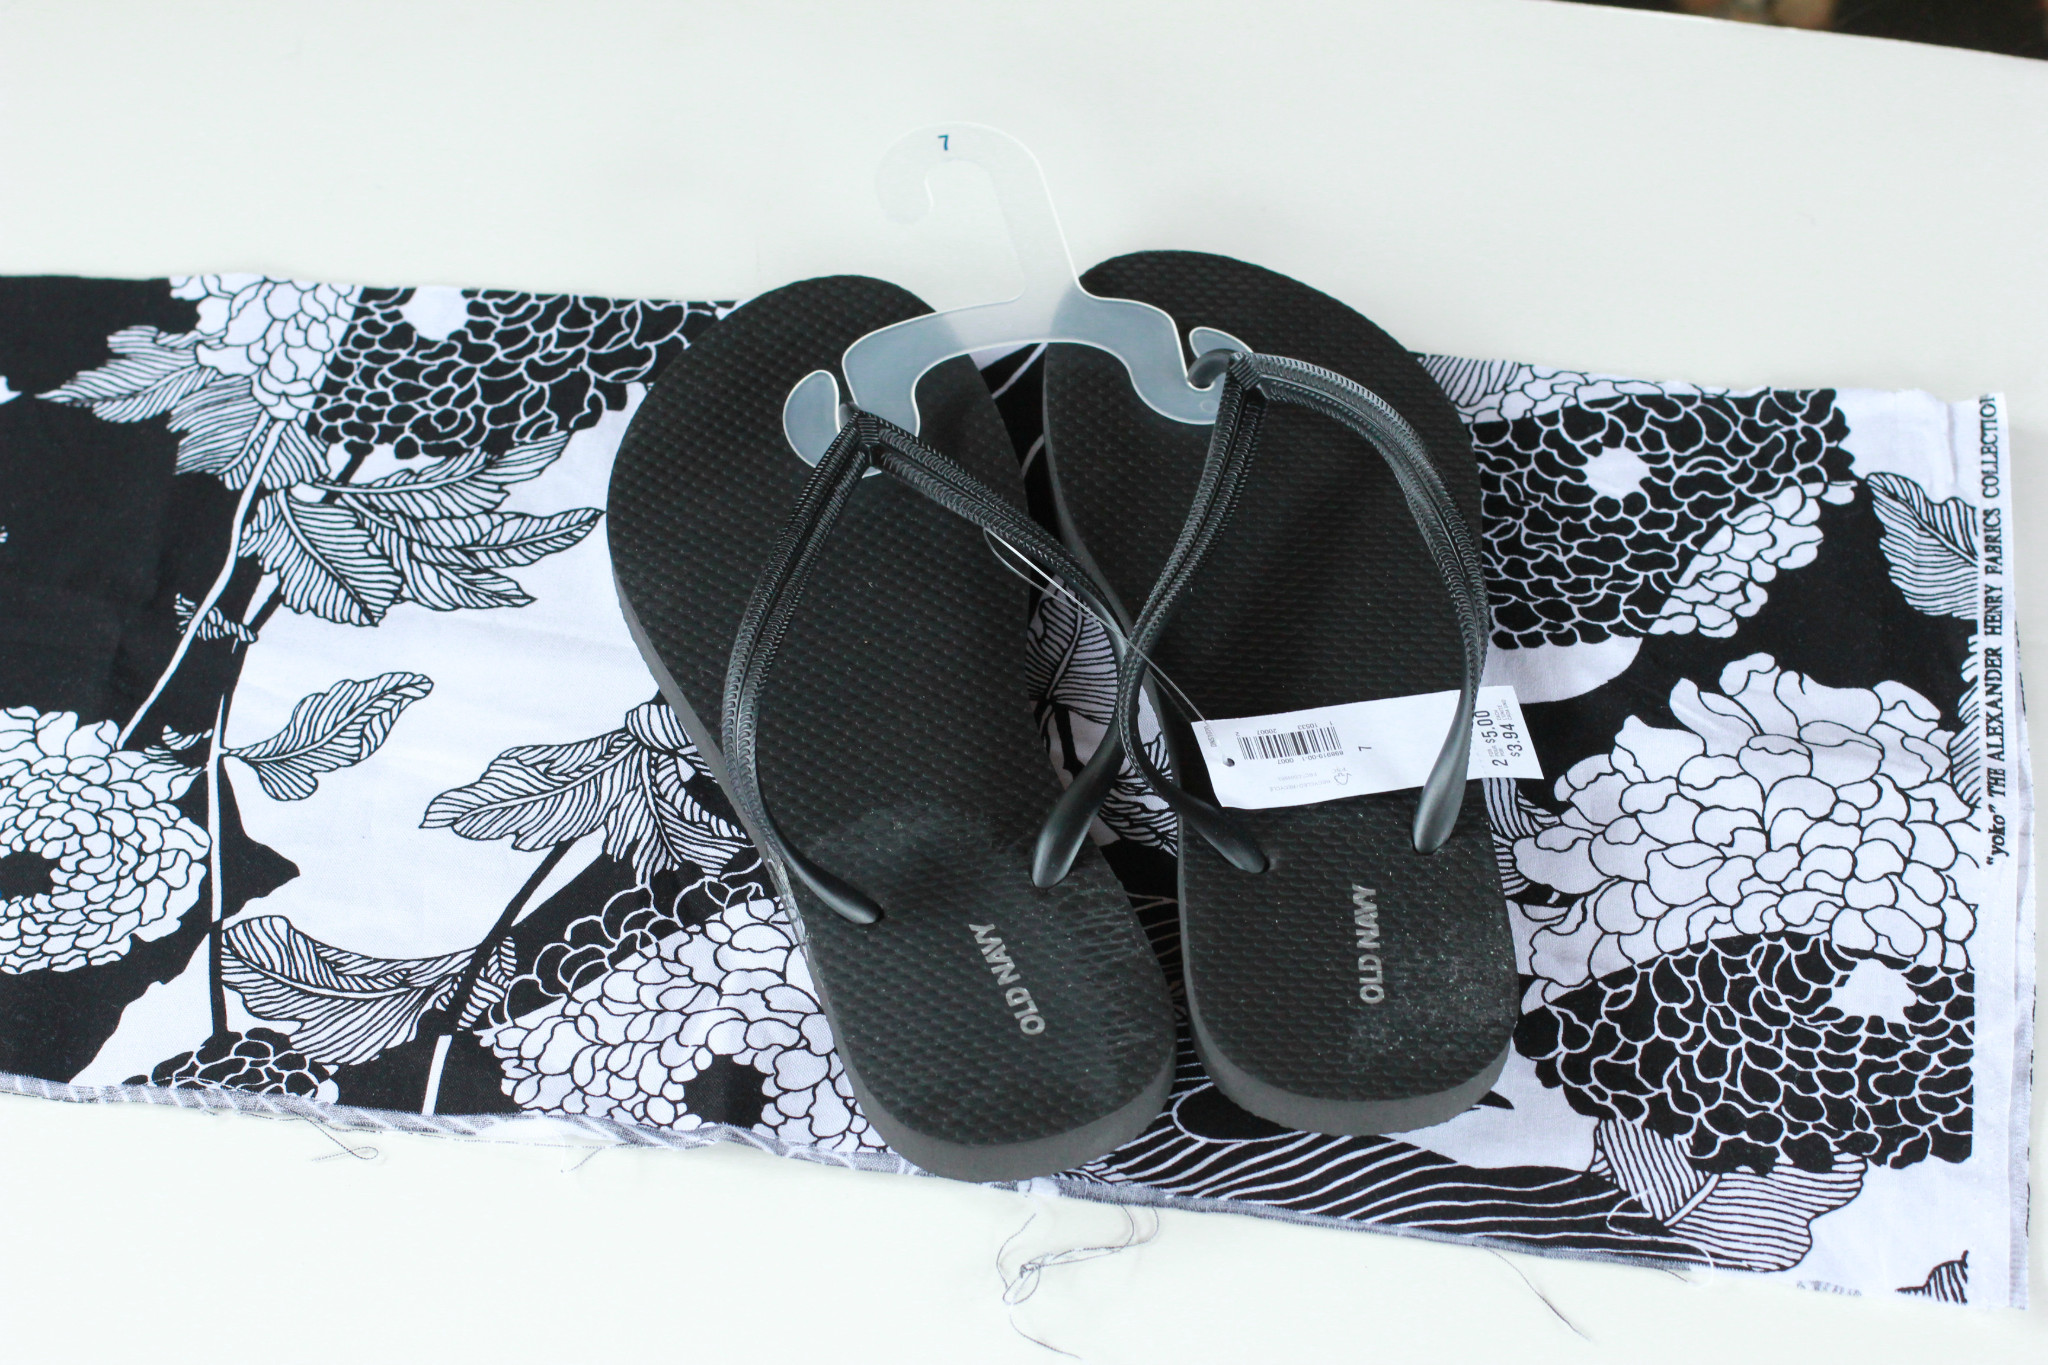 d8c2fbf55 Kate Spade-Inspired DIY Fabric Flip-Flops for Just  3.50 - Mommysavers